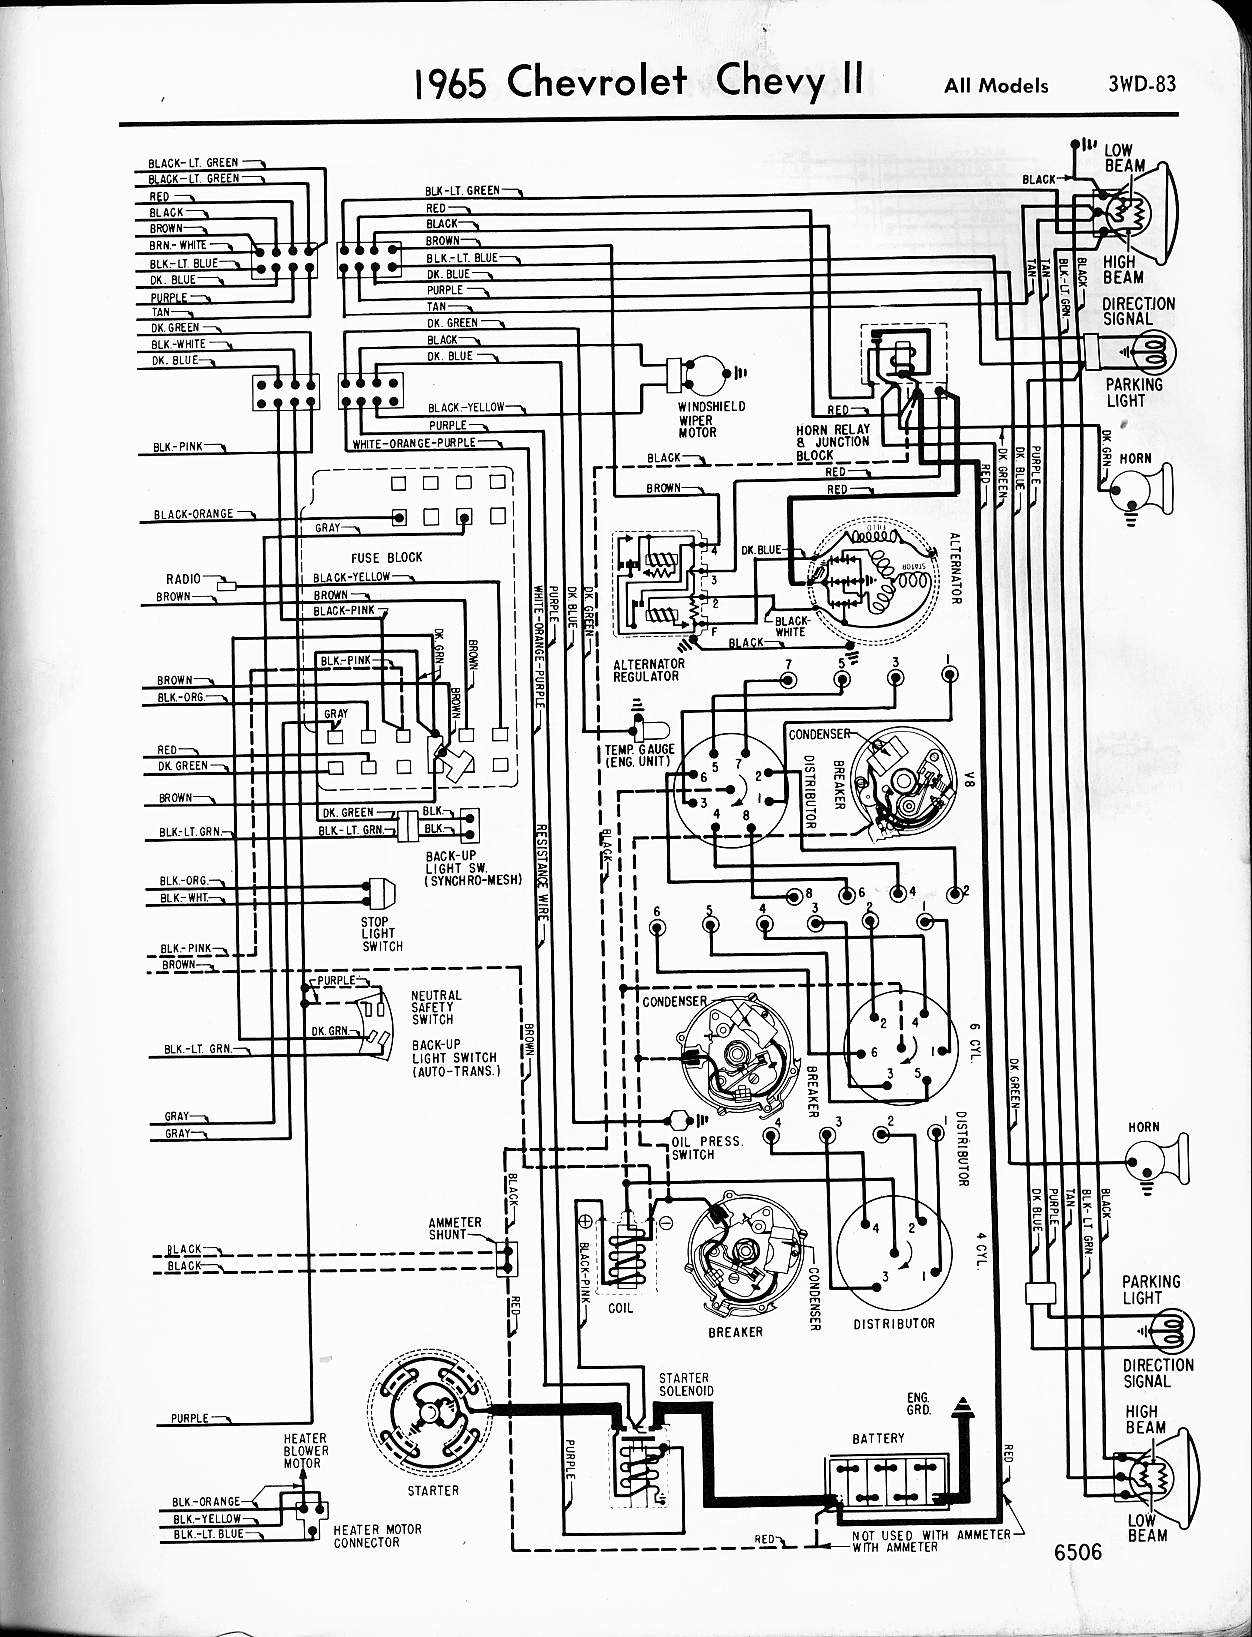 MWireChev65_3WD 083 57 65 chevy wiring diagrams 1965 chevy ignition switch wiring diagram at edmiracle.co